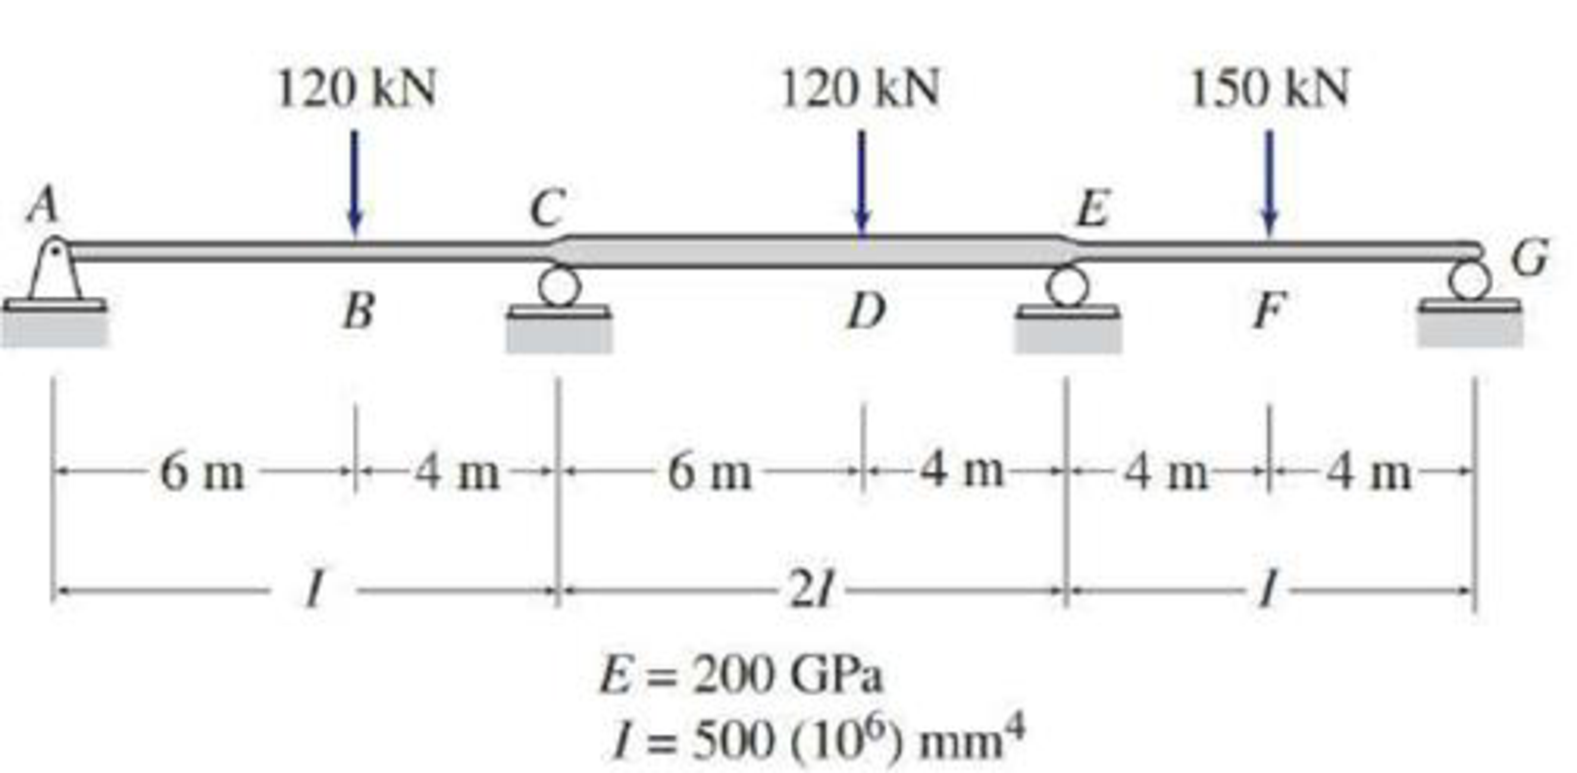 Chapter 13, Problem 54P, Solve Problem 13.39 for the loading shown in Fig. P13.39 and the support settlements of 10 mm at A,